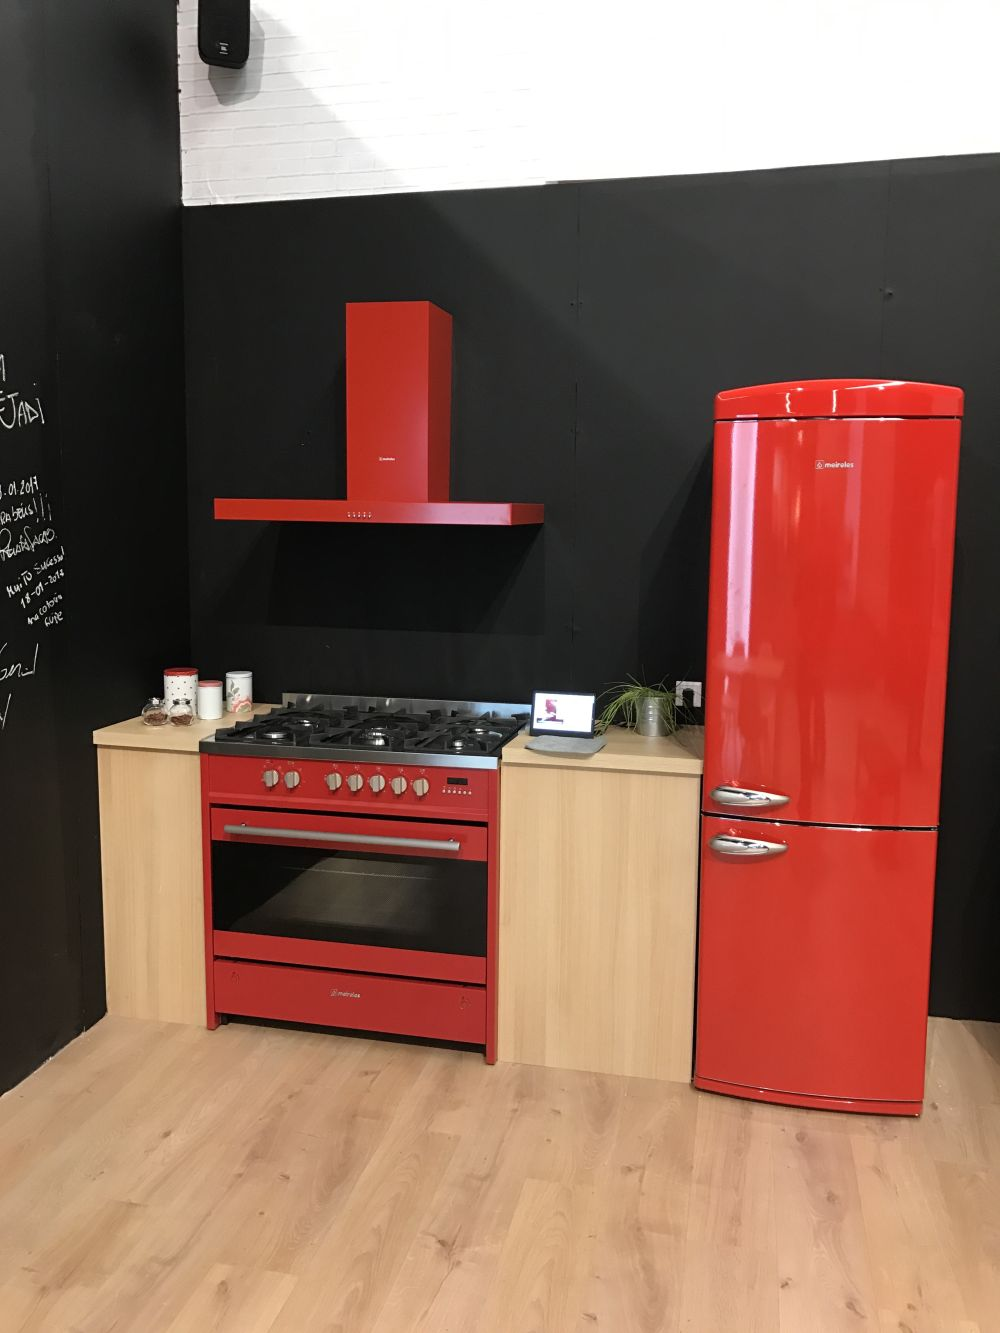 Similarly, a red fridge can be matched with a red oven and a red hood, although you can also combine two or more colors